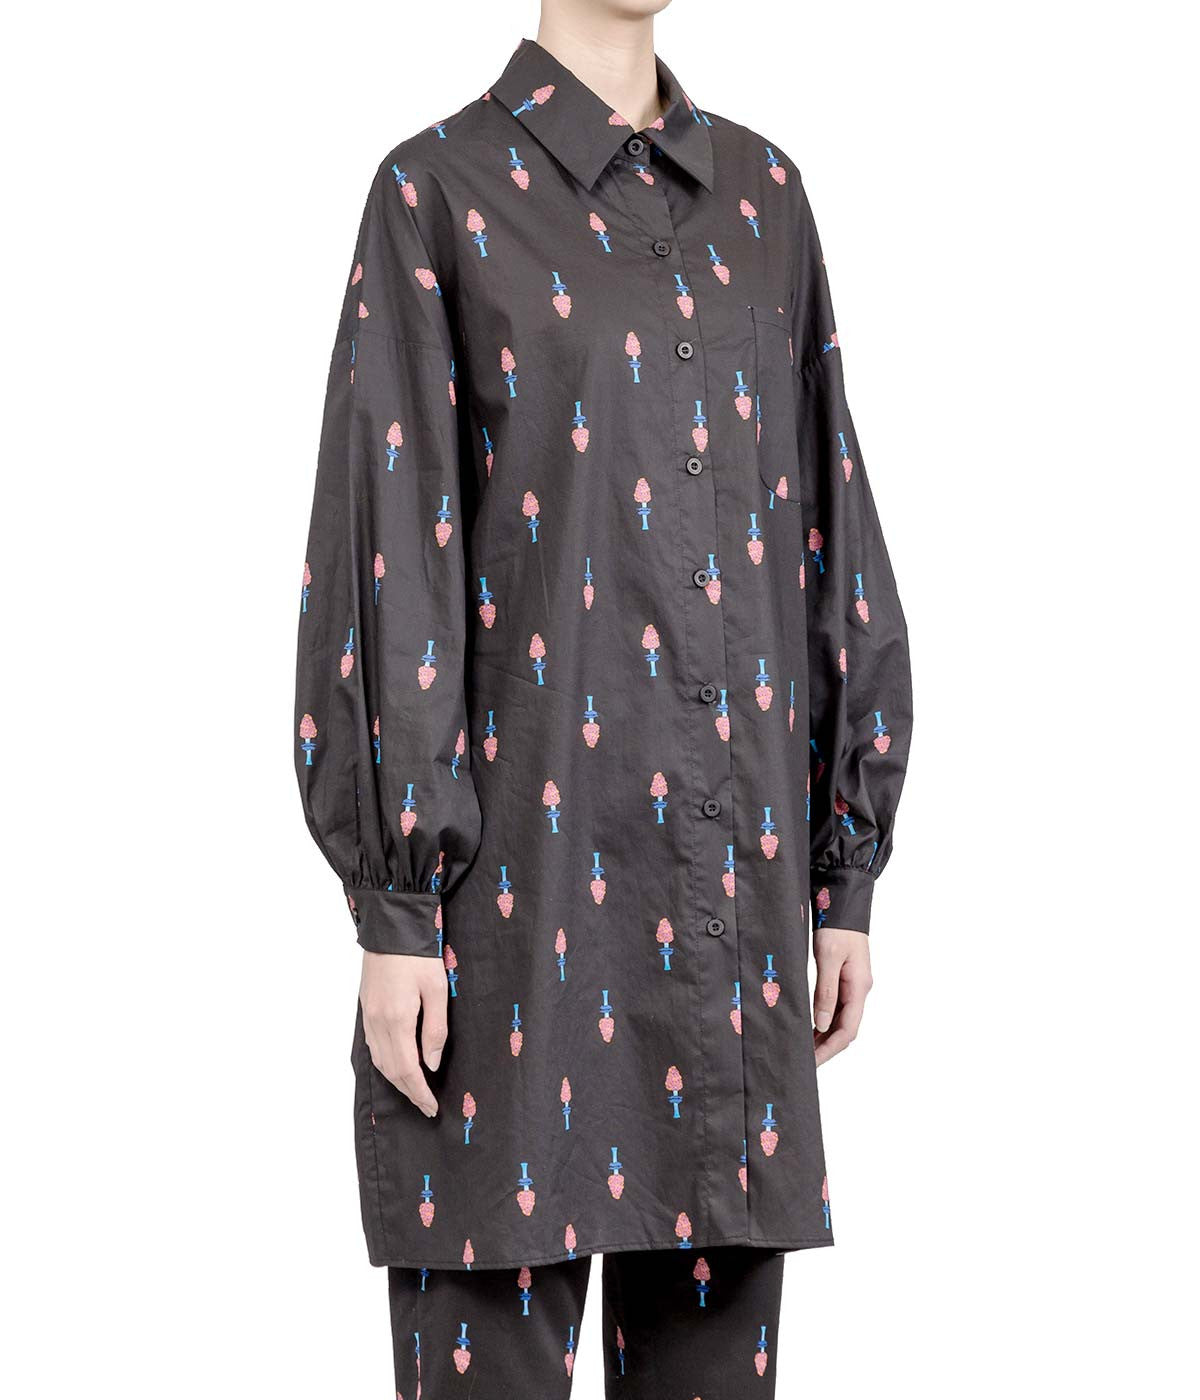 Black Poisonous Mushroom Printed Oversized Shirt